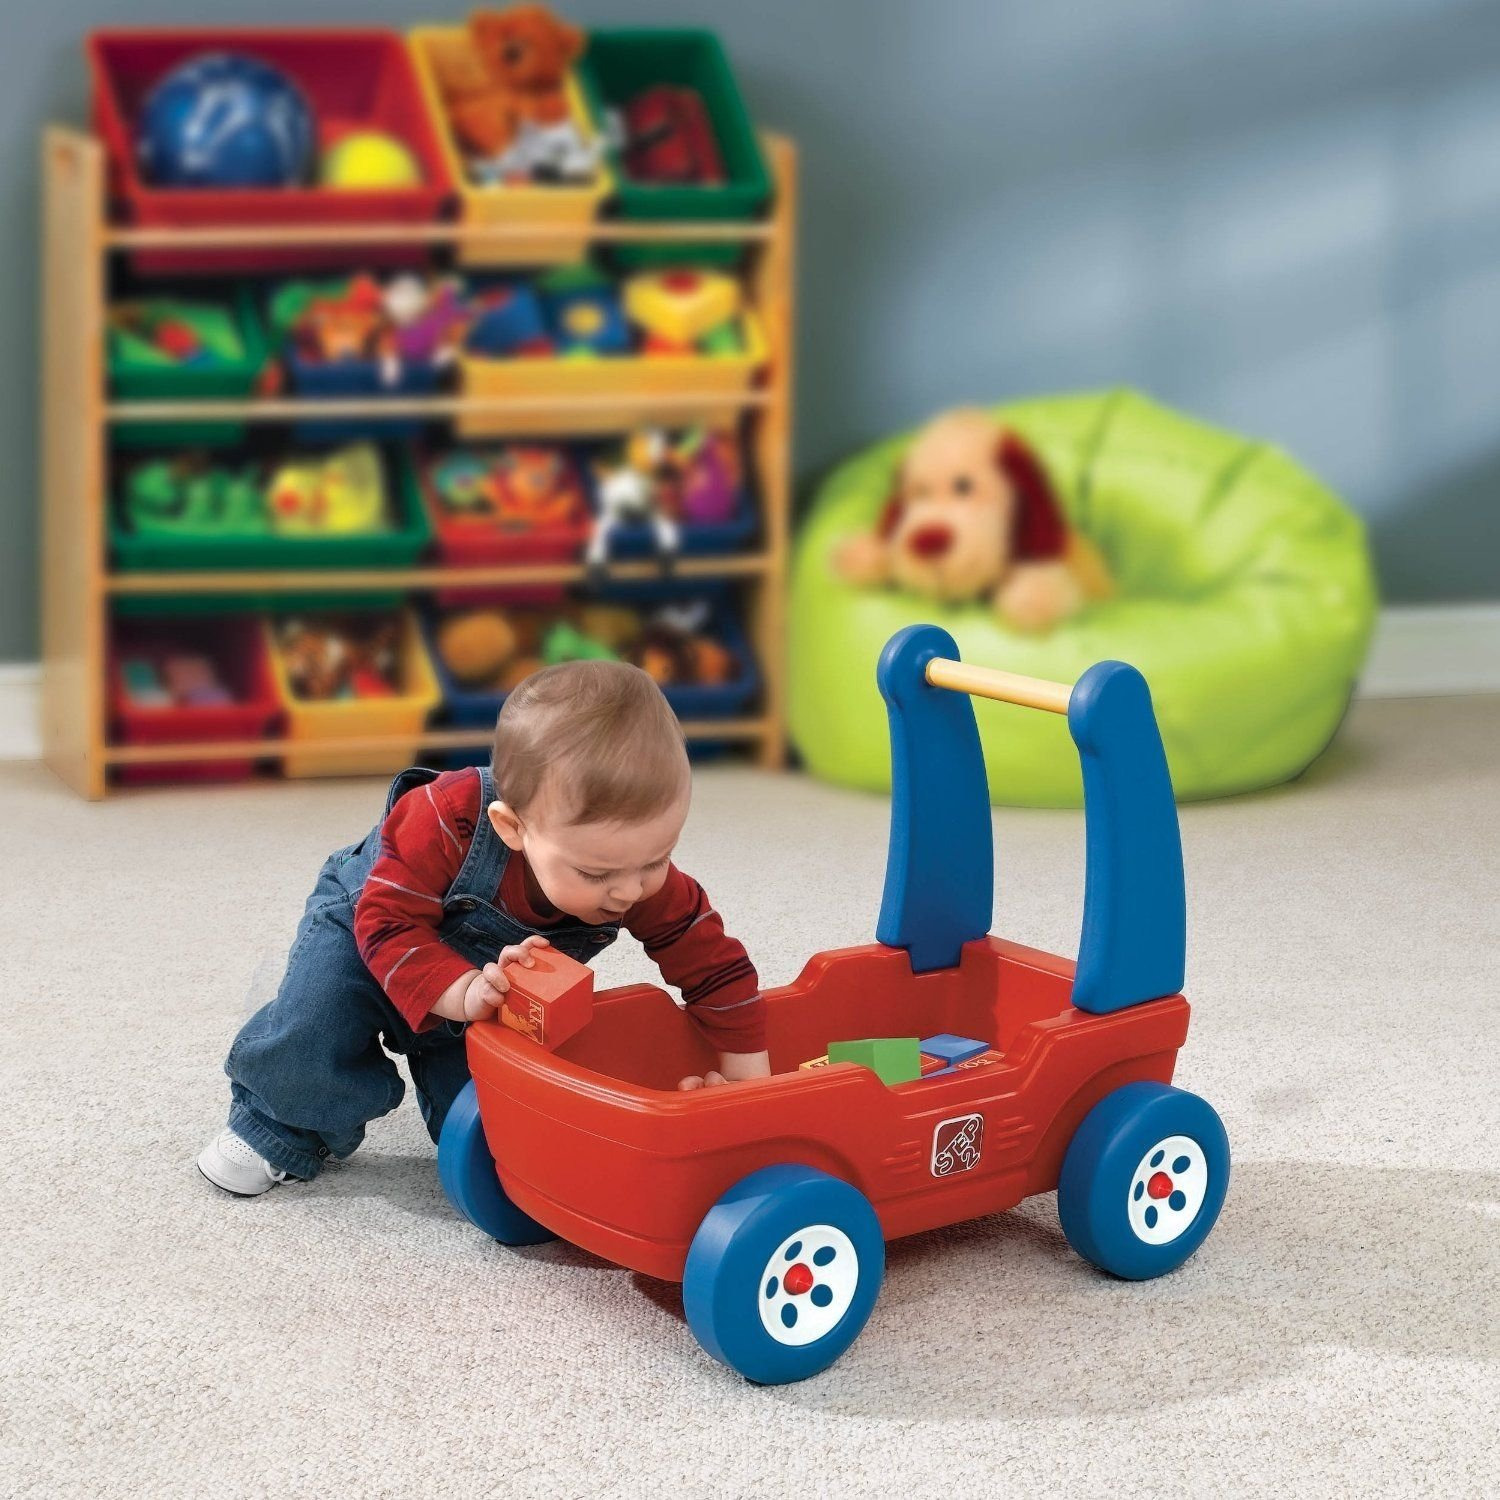 10 Unique Gift Ideas For One Year Old Boy best rated budget friendly gift ideas for one year old boys first 7 2020